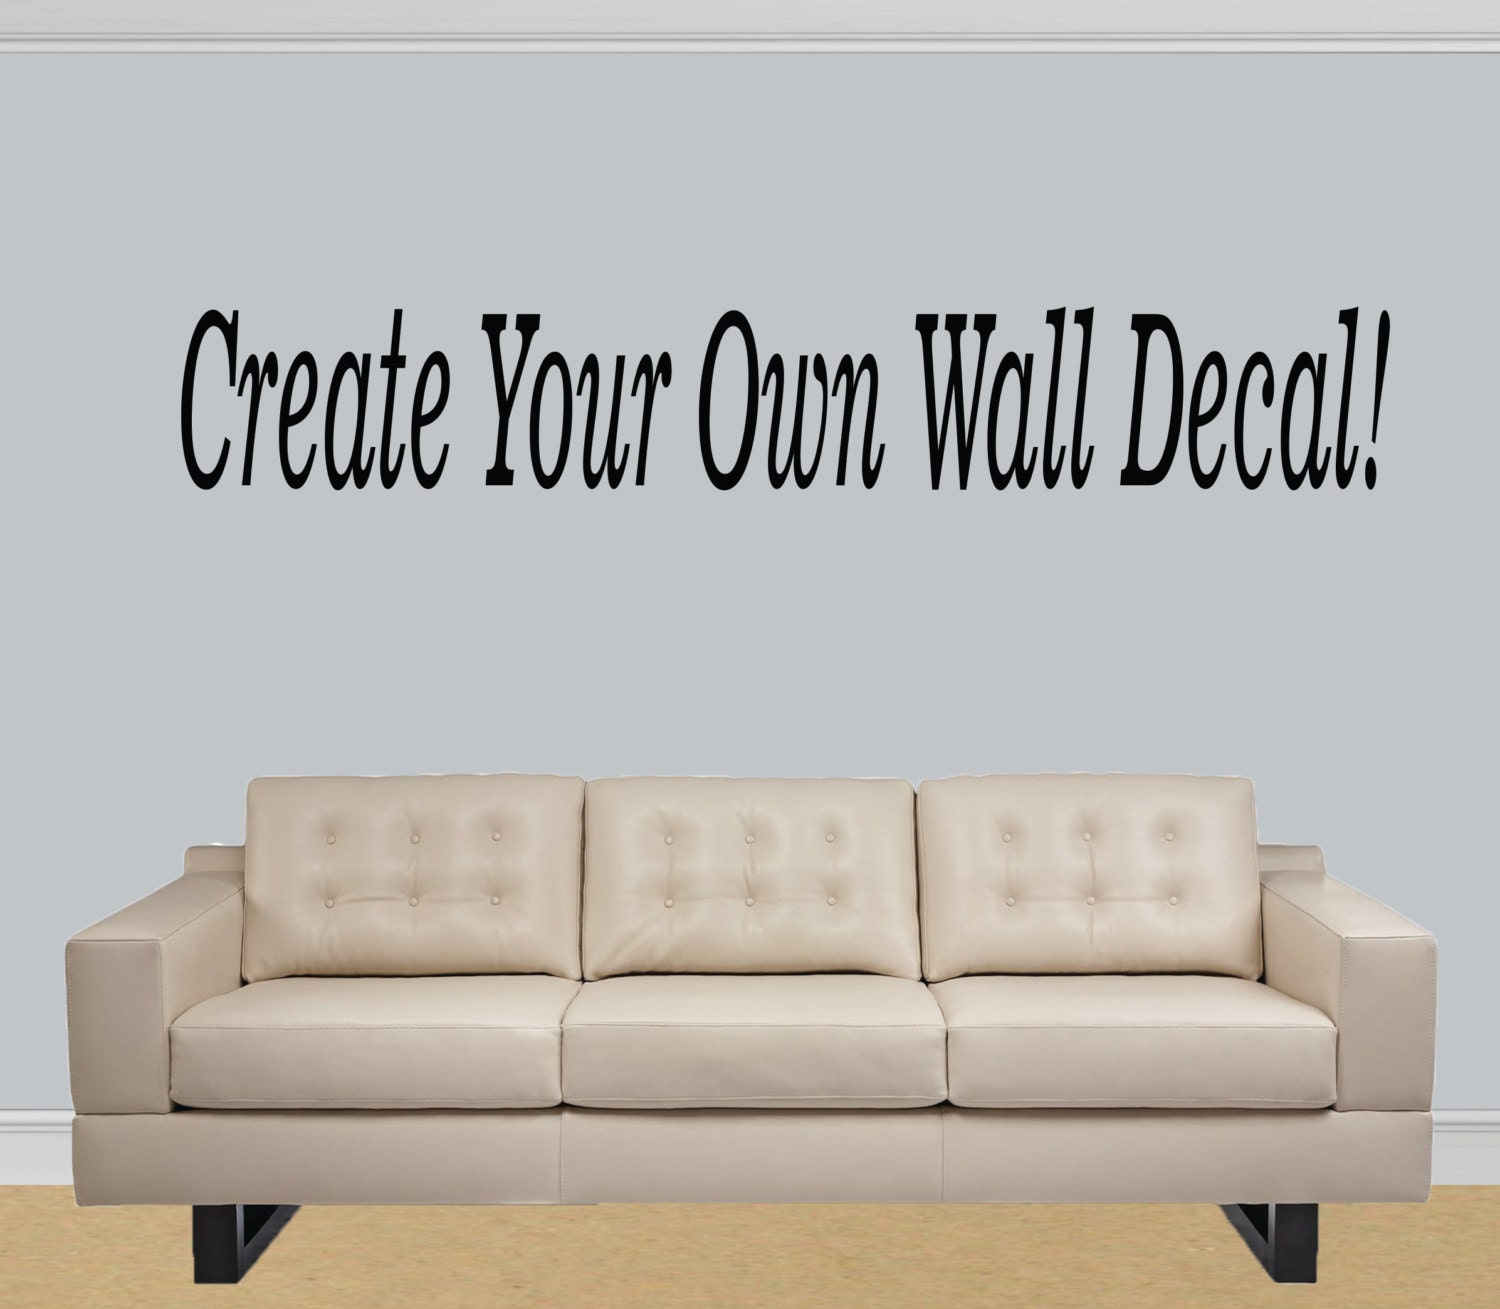 design your own wall decal quote custom make by create your own custom wall sticker quote by making